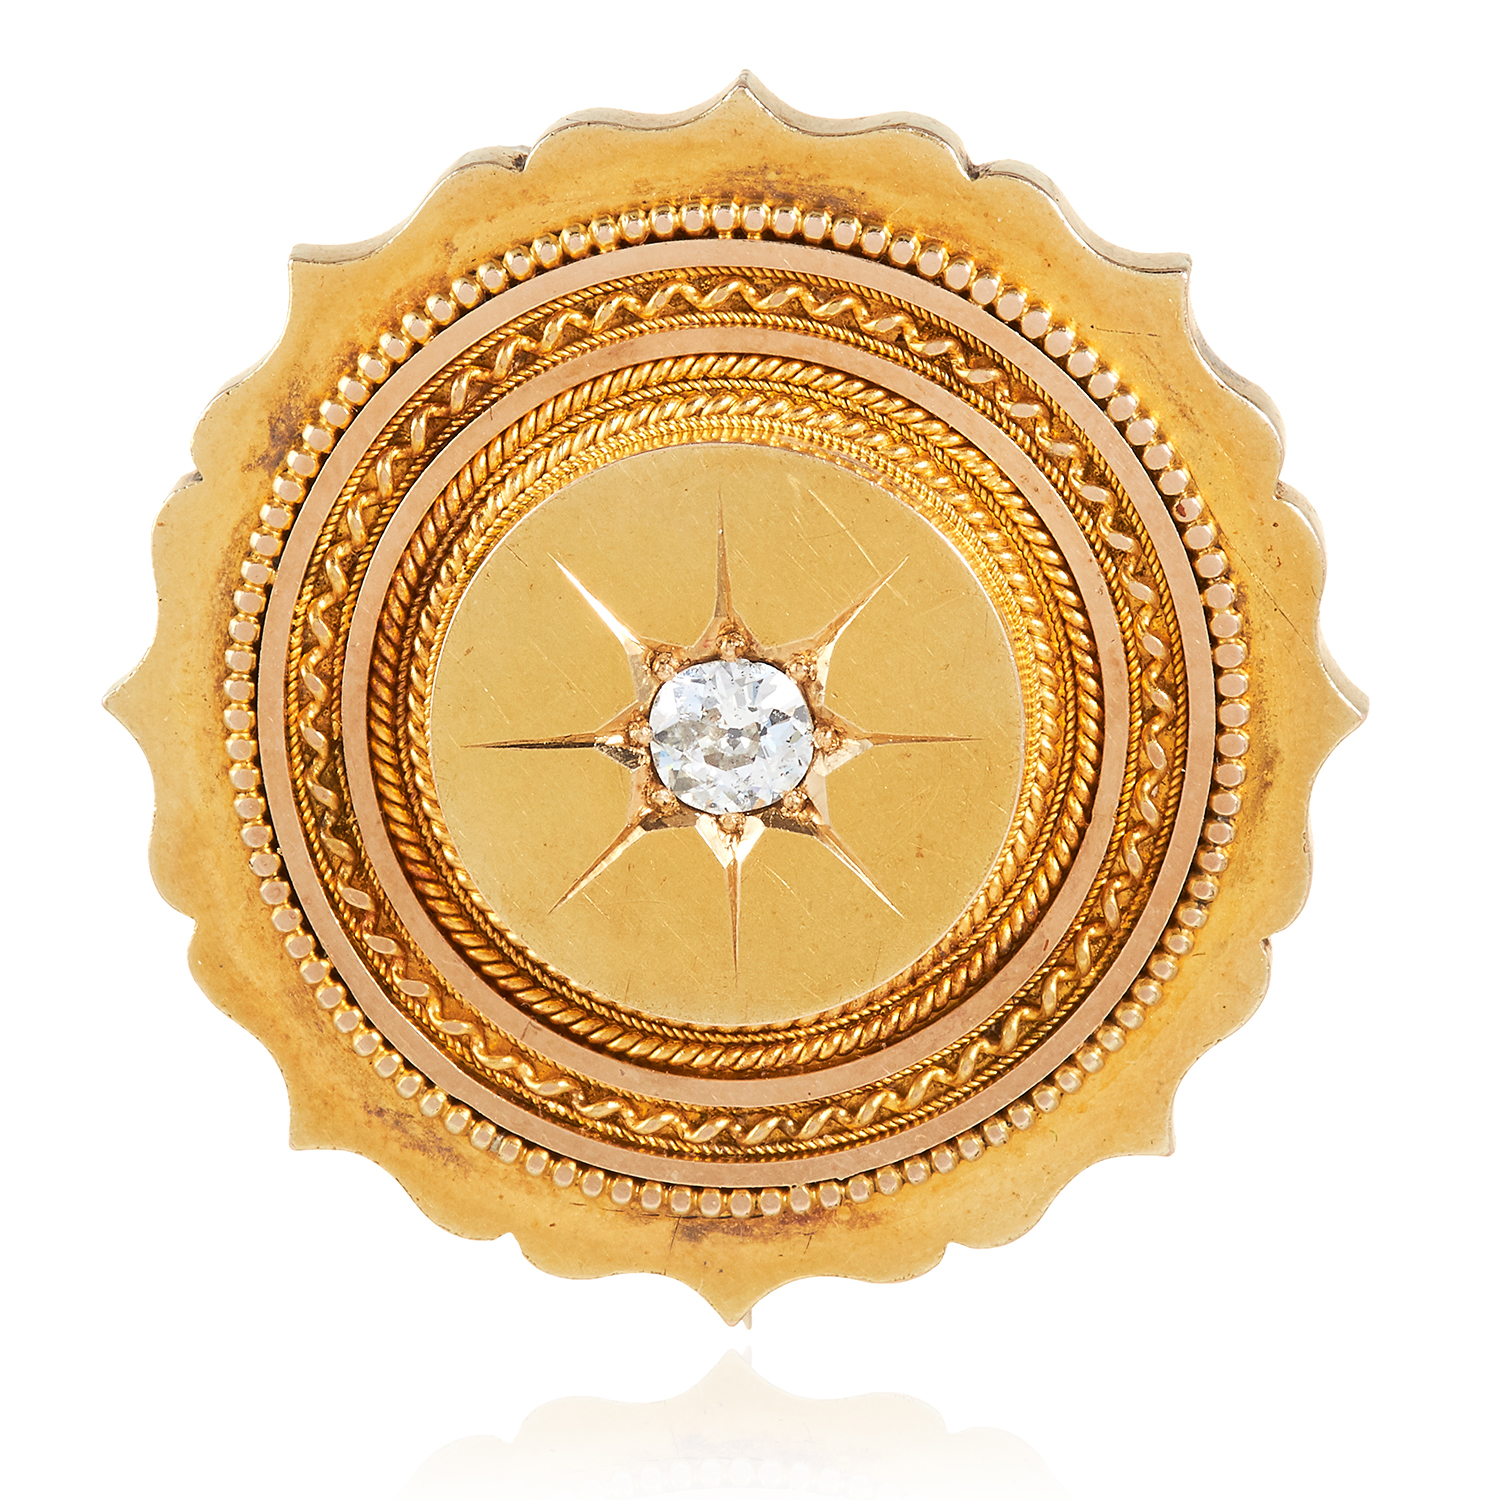 Los 8 - AN ANTIQUE DIAMOND MOURNING BROOCH in high carat yellow gold, the scalloped circular body set at the